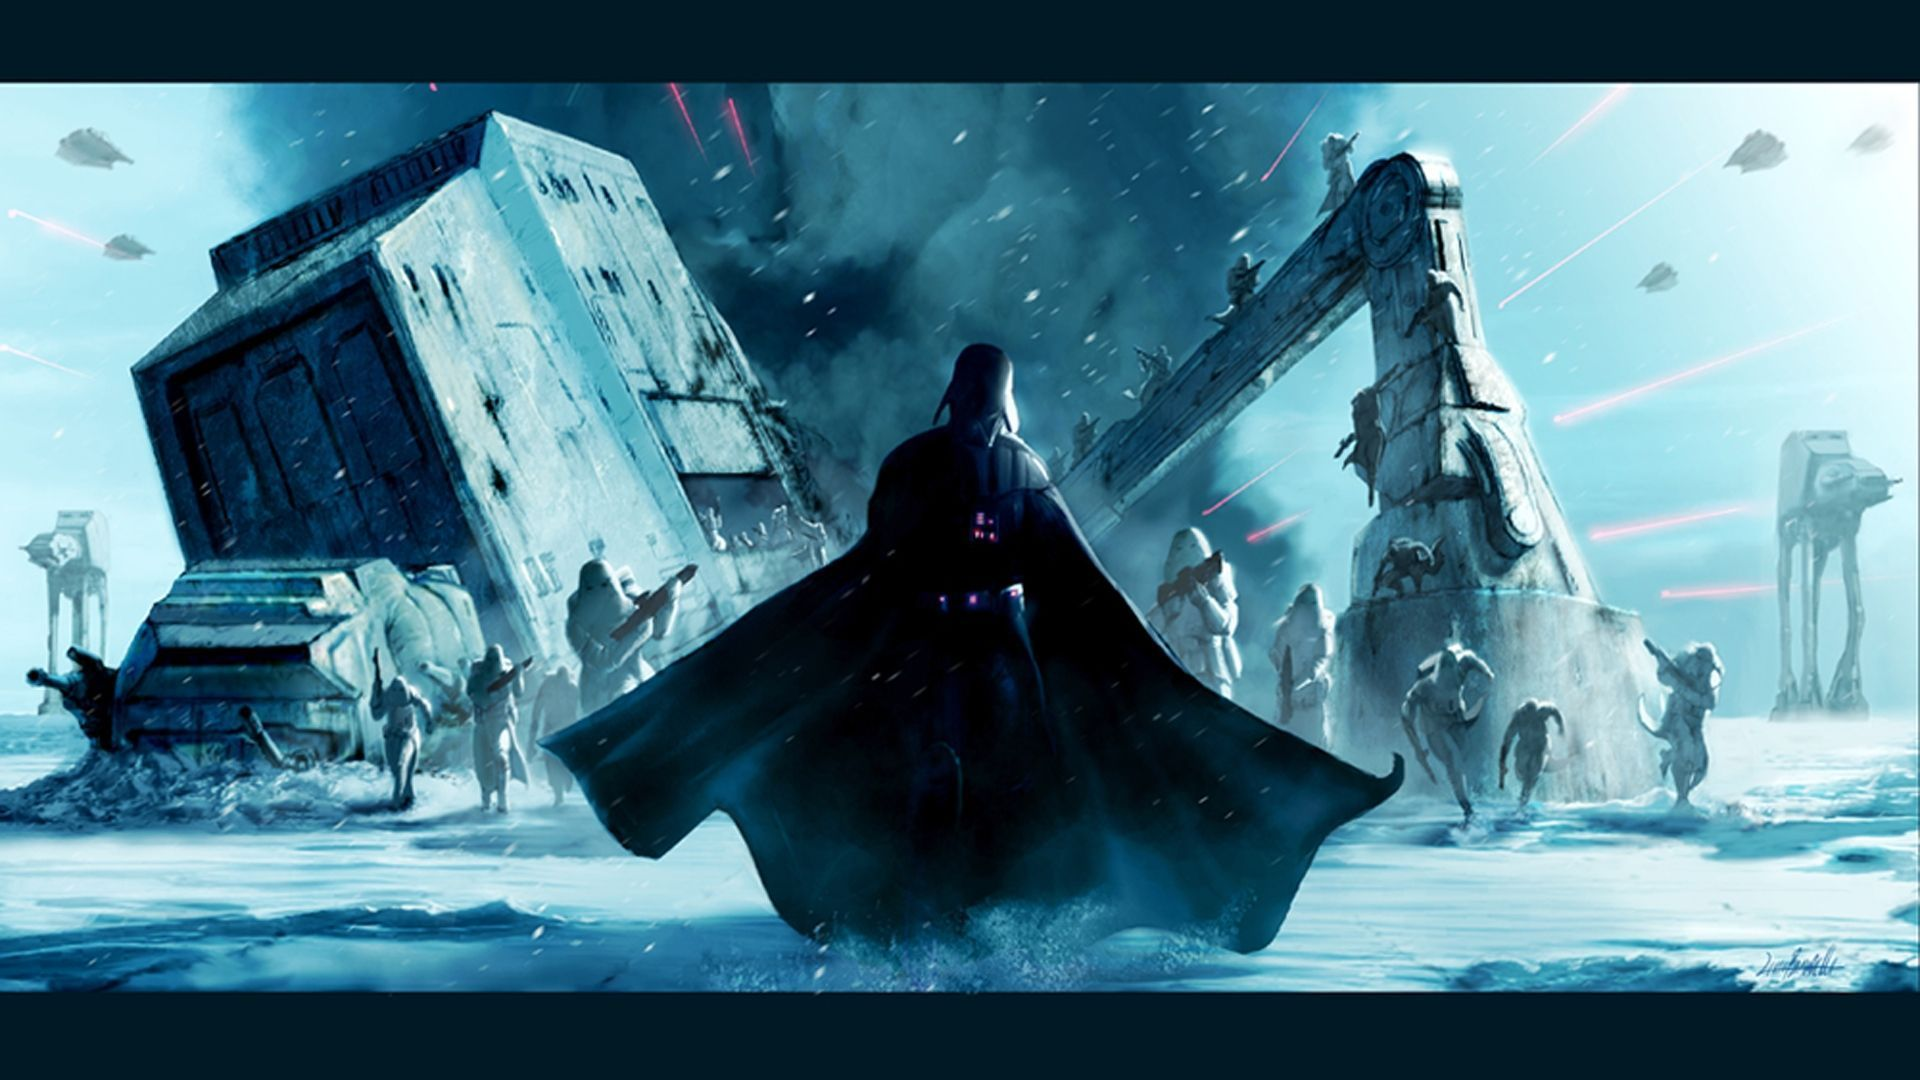 Star Wars Darth Vader Wallpapers - Wallpaper Cave